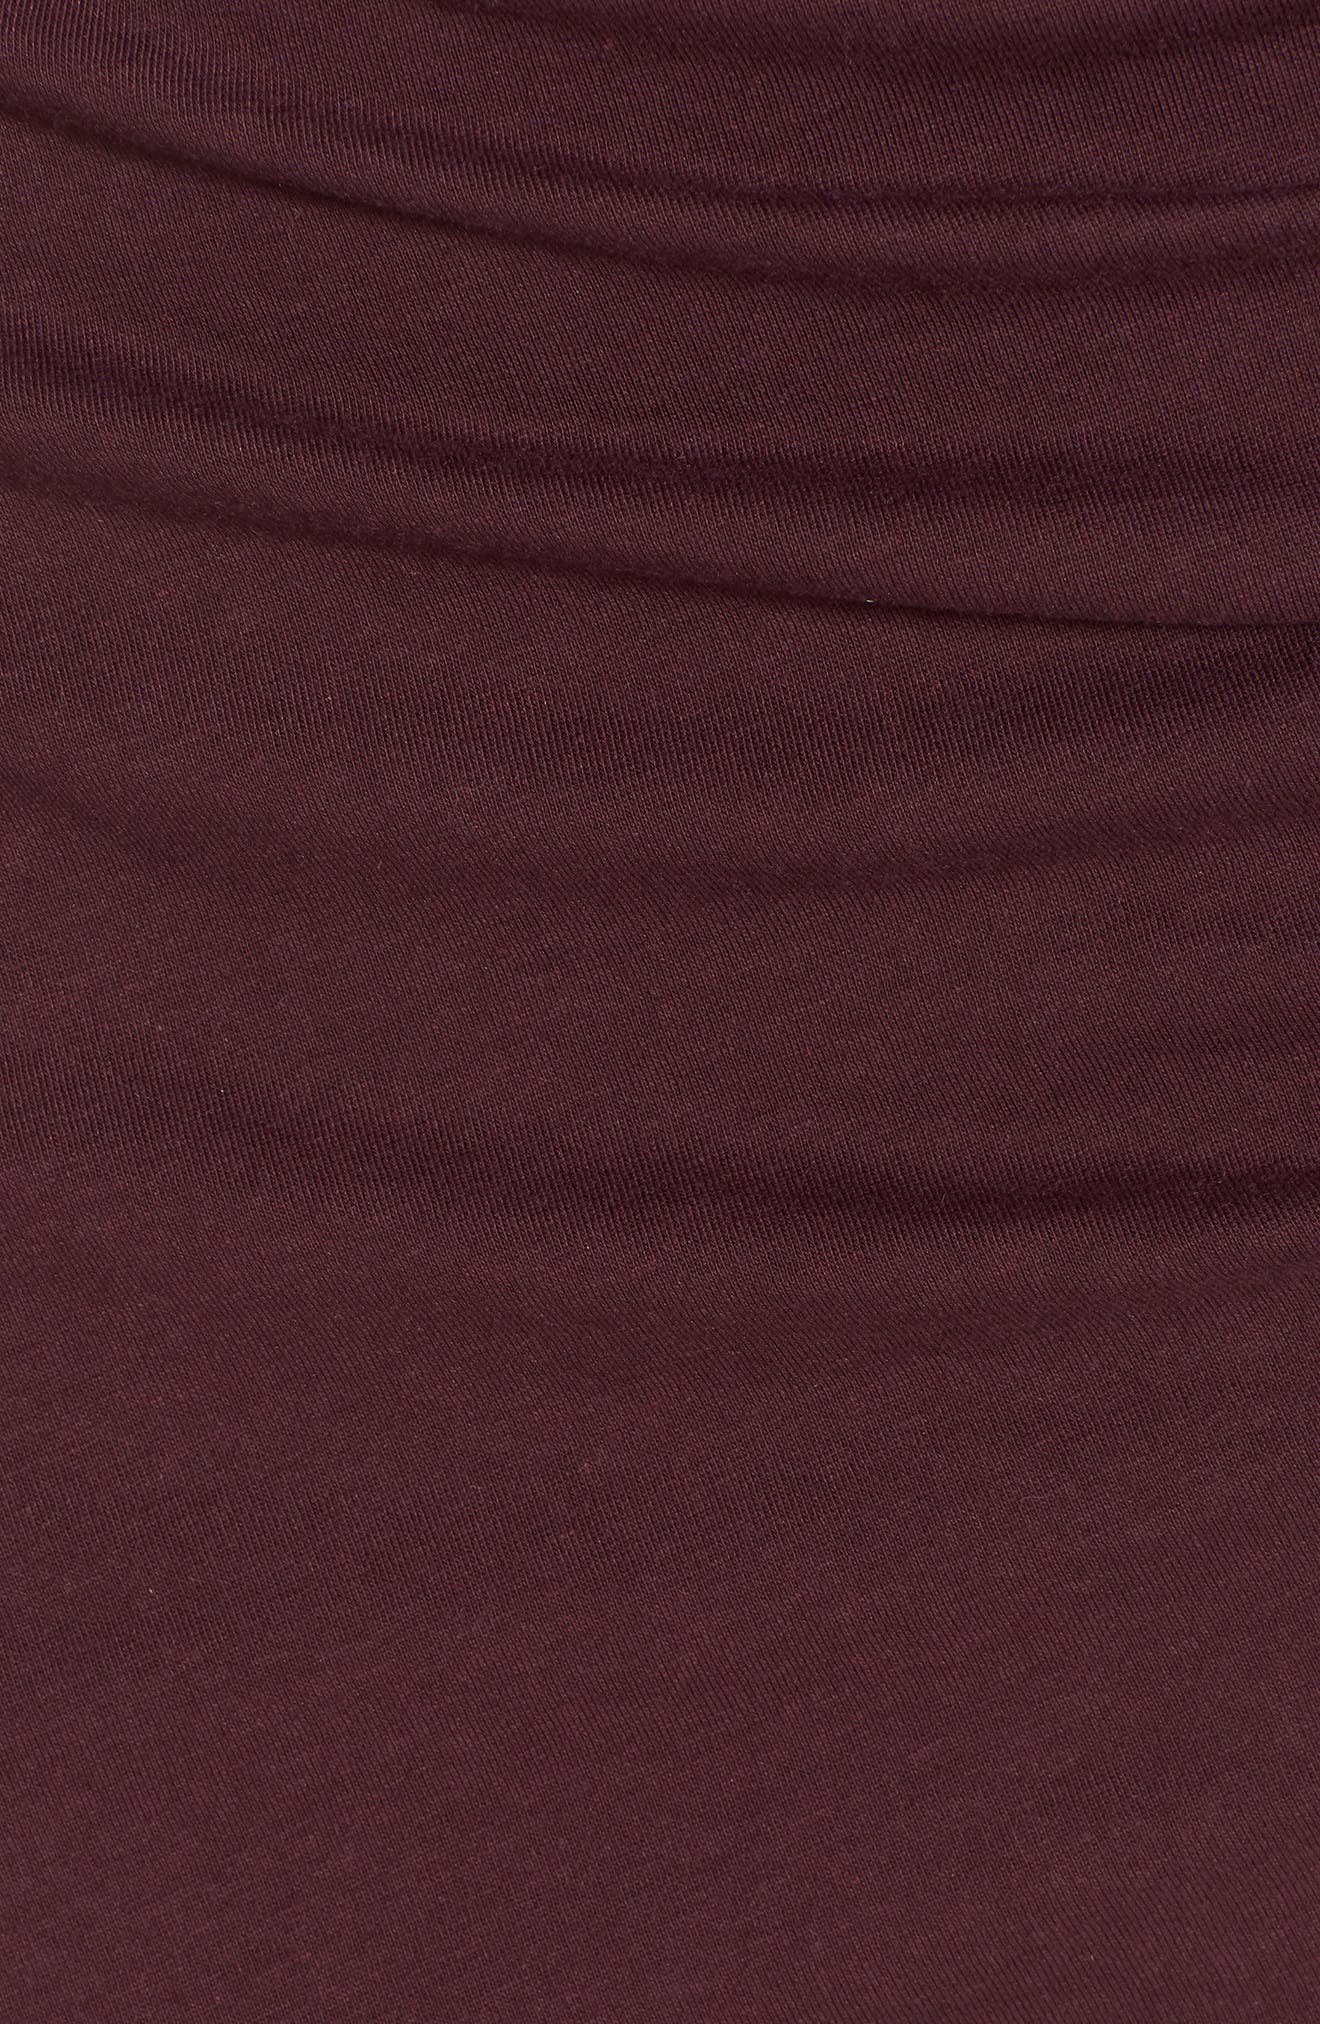 Ruched Body-Con Tank Dress,                             Alternate thumbnail 186, color,